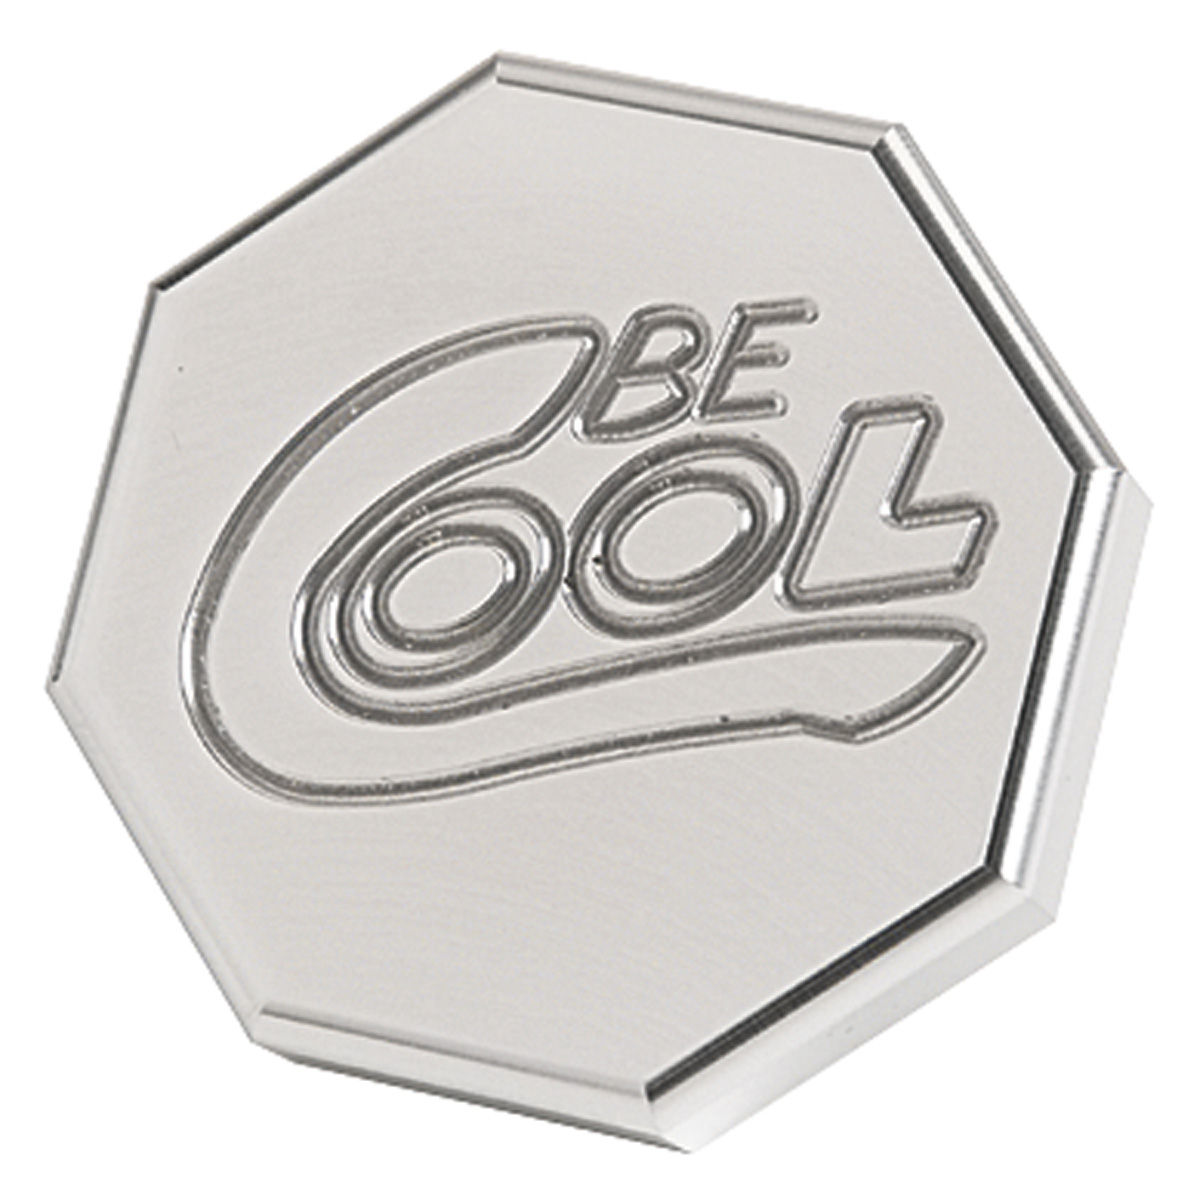 Photo of Bonneville Radiator Cap octagon